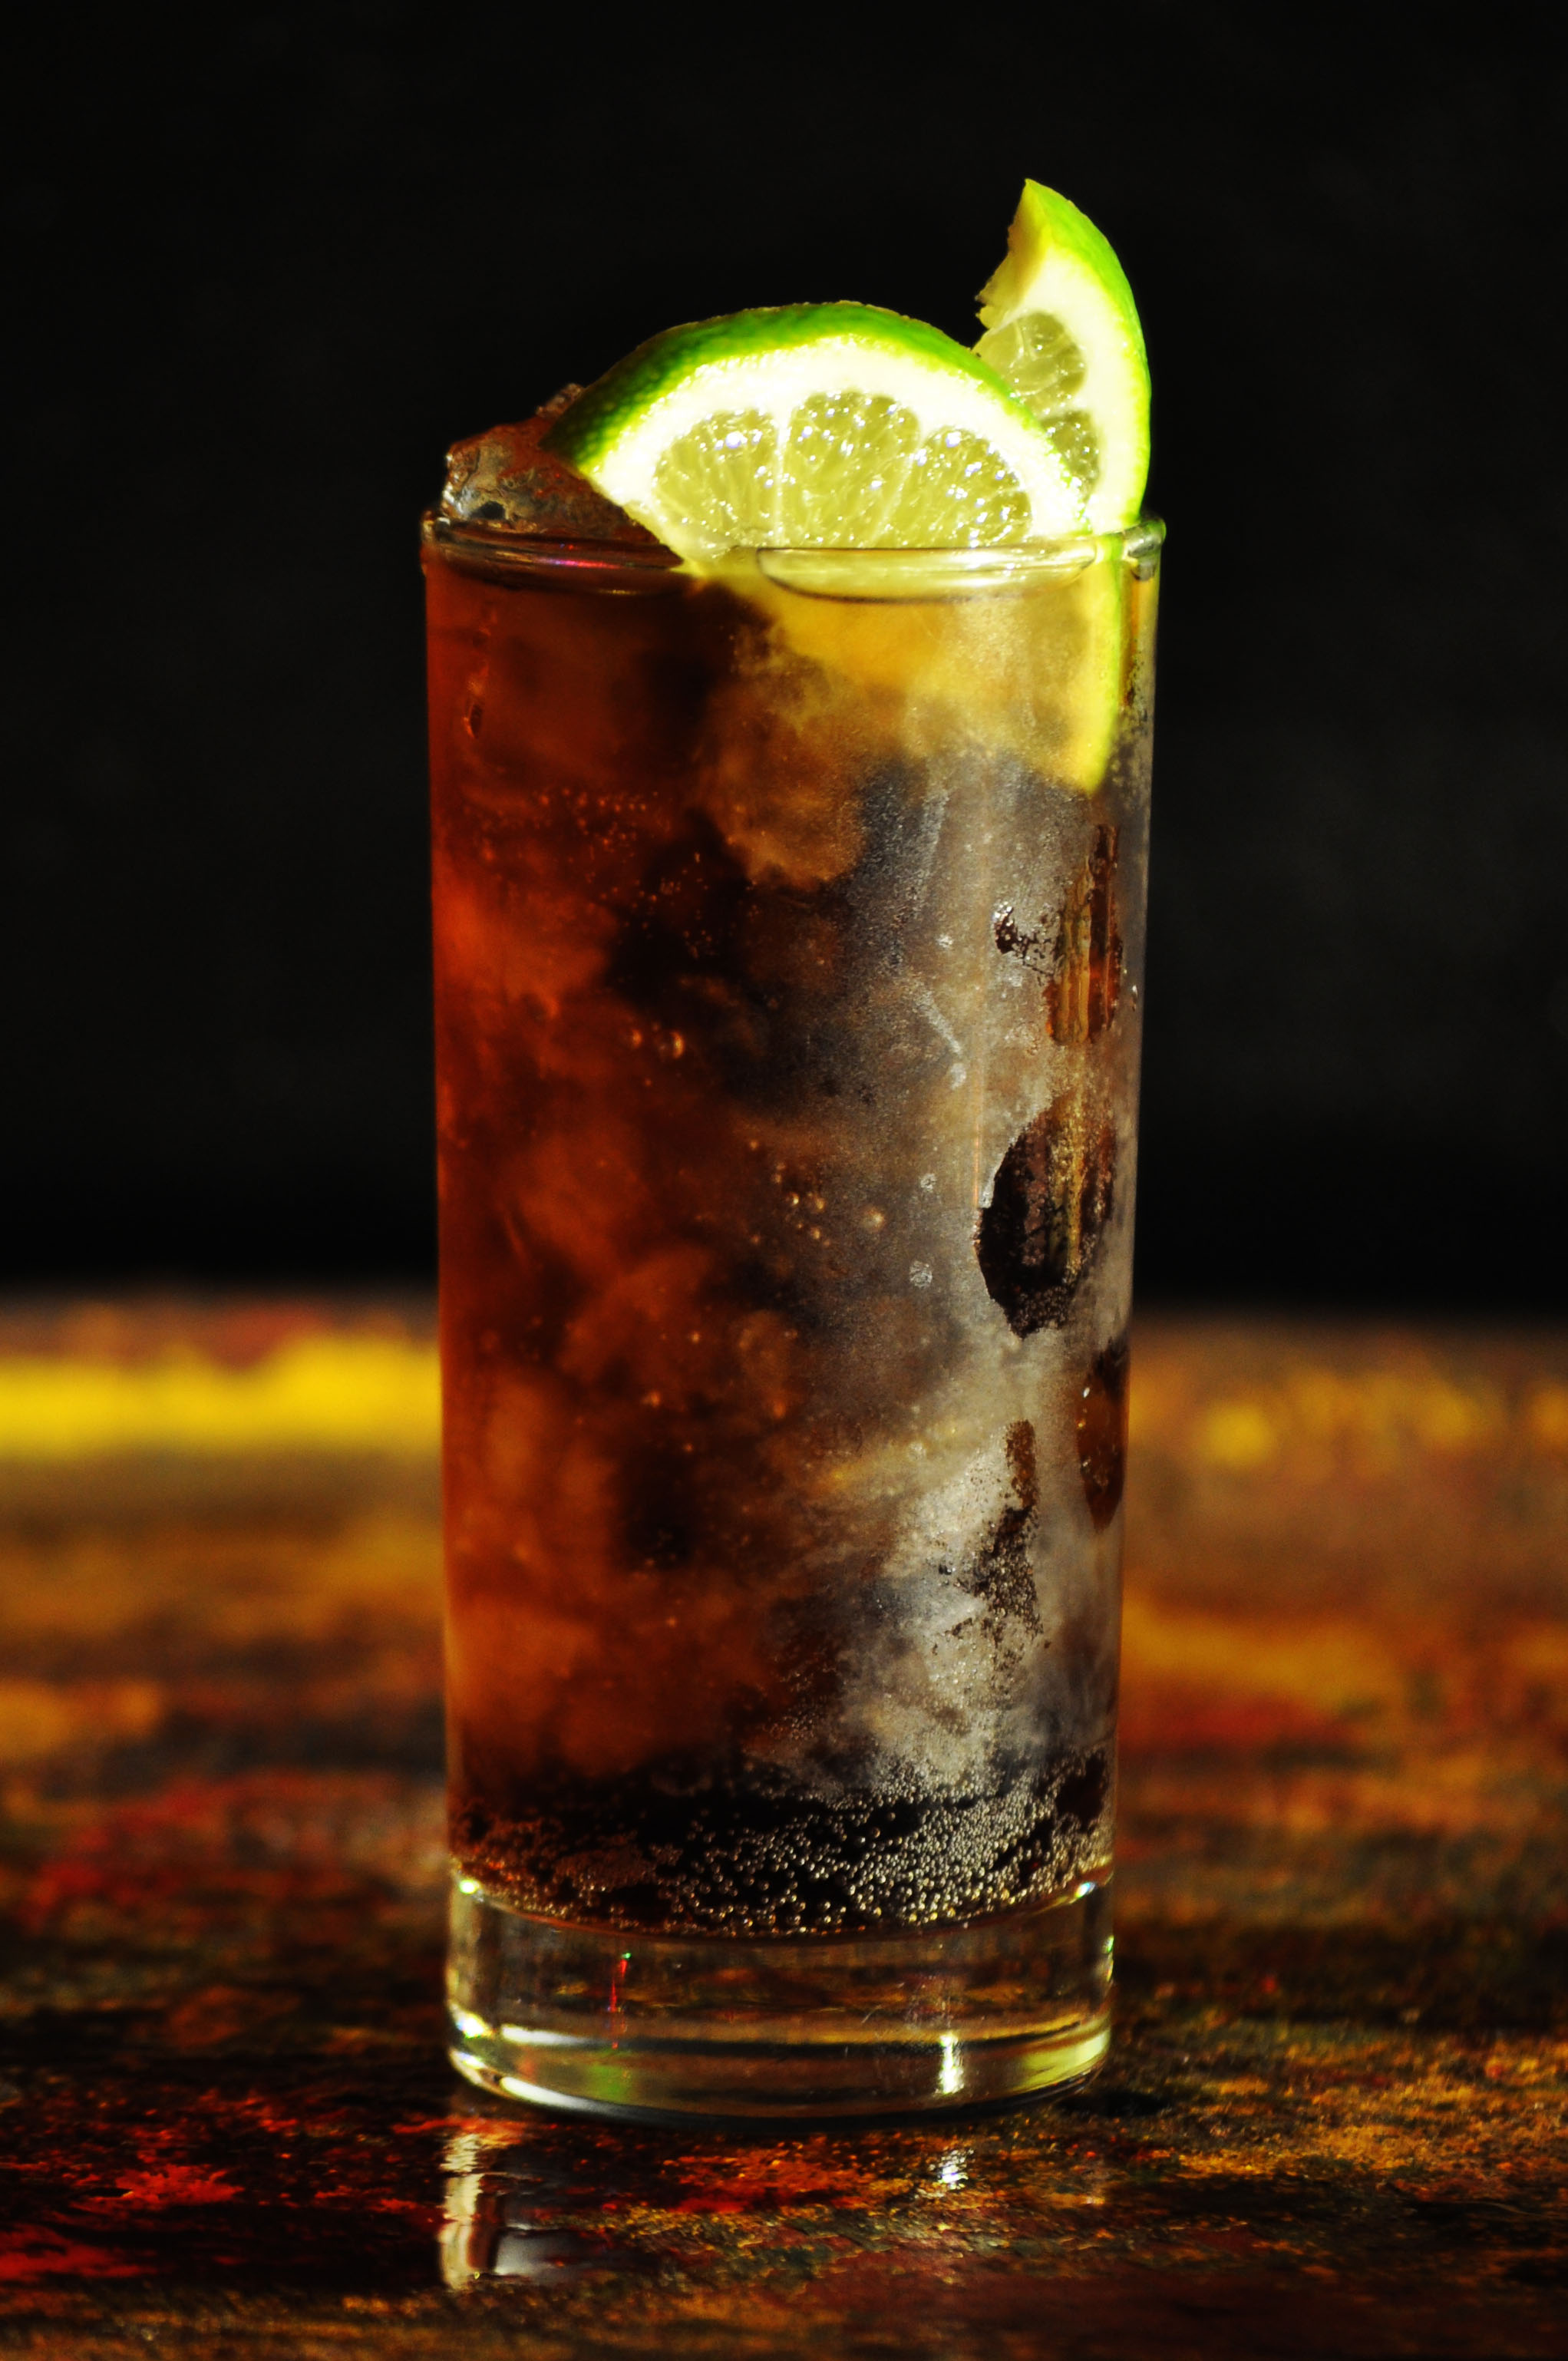 Top 10 Most Popular Cocktails In The World - Cuba Libre